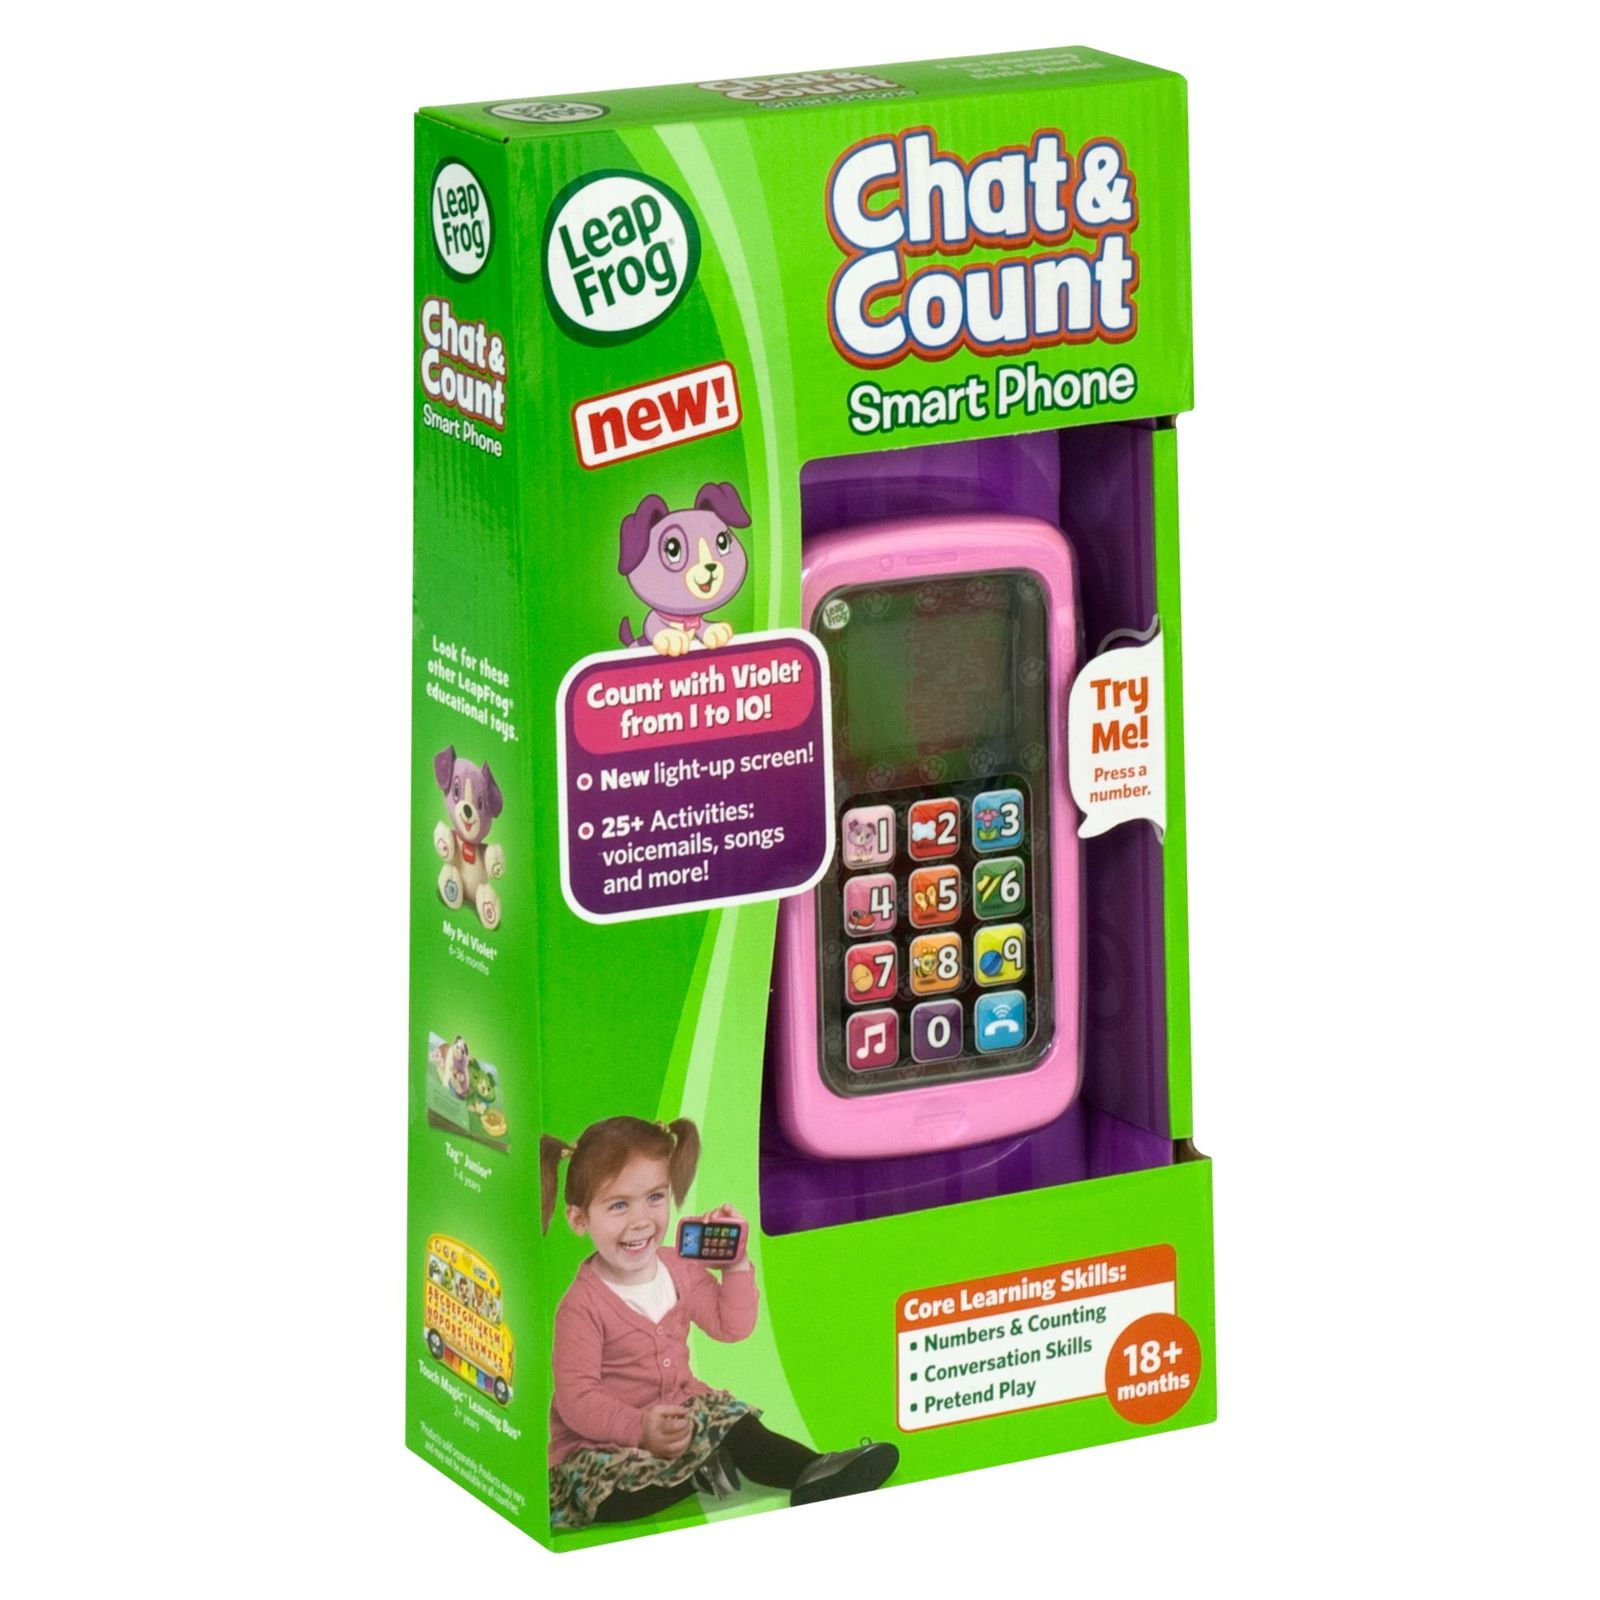 Leapfrog Chat and Count Phone Violet | Toy